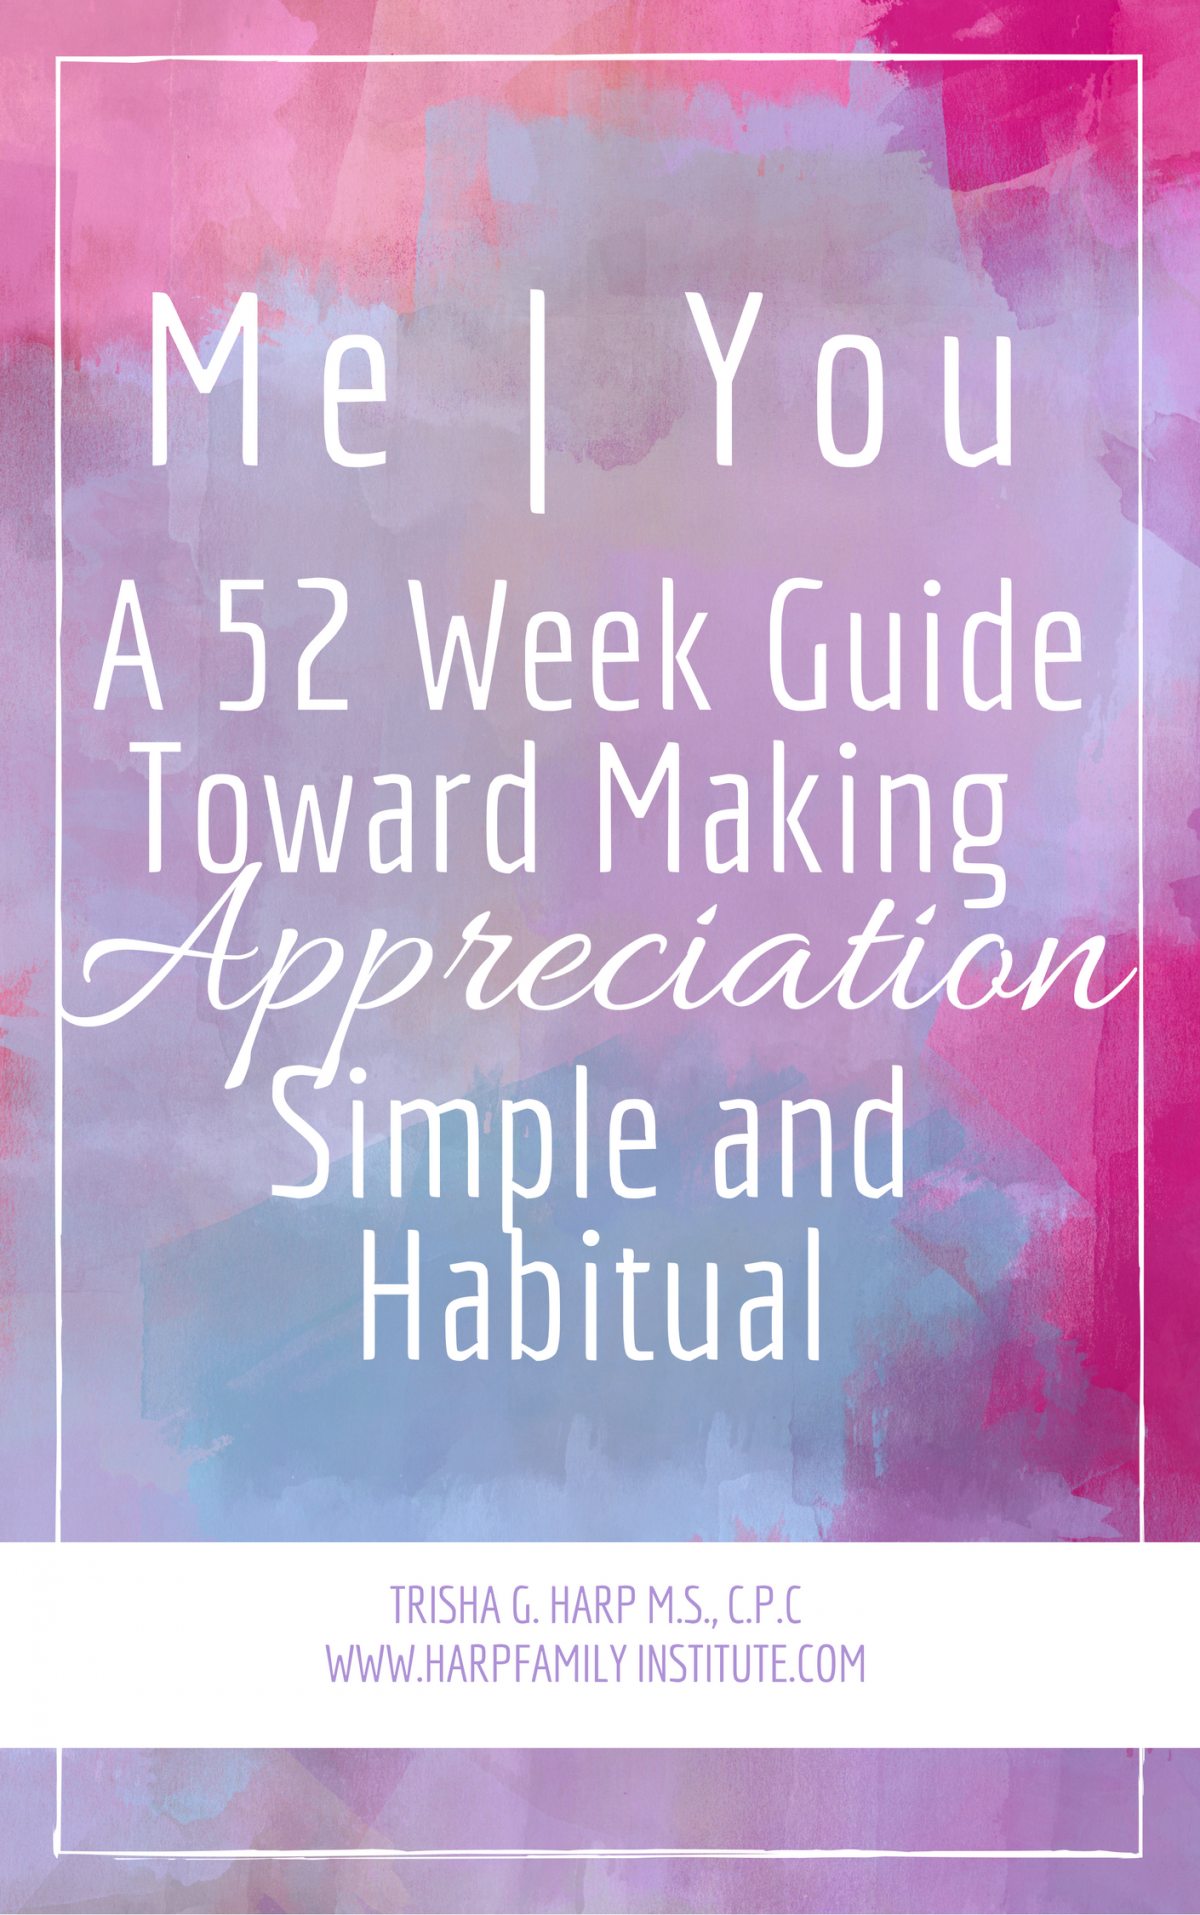 Me | You A 52 Week Guide Toward Making Appreciation Simple and Habitual